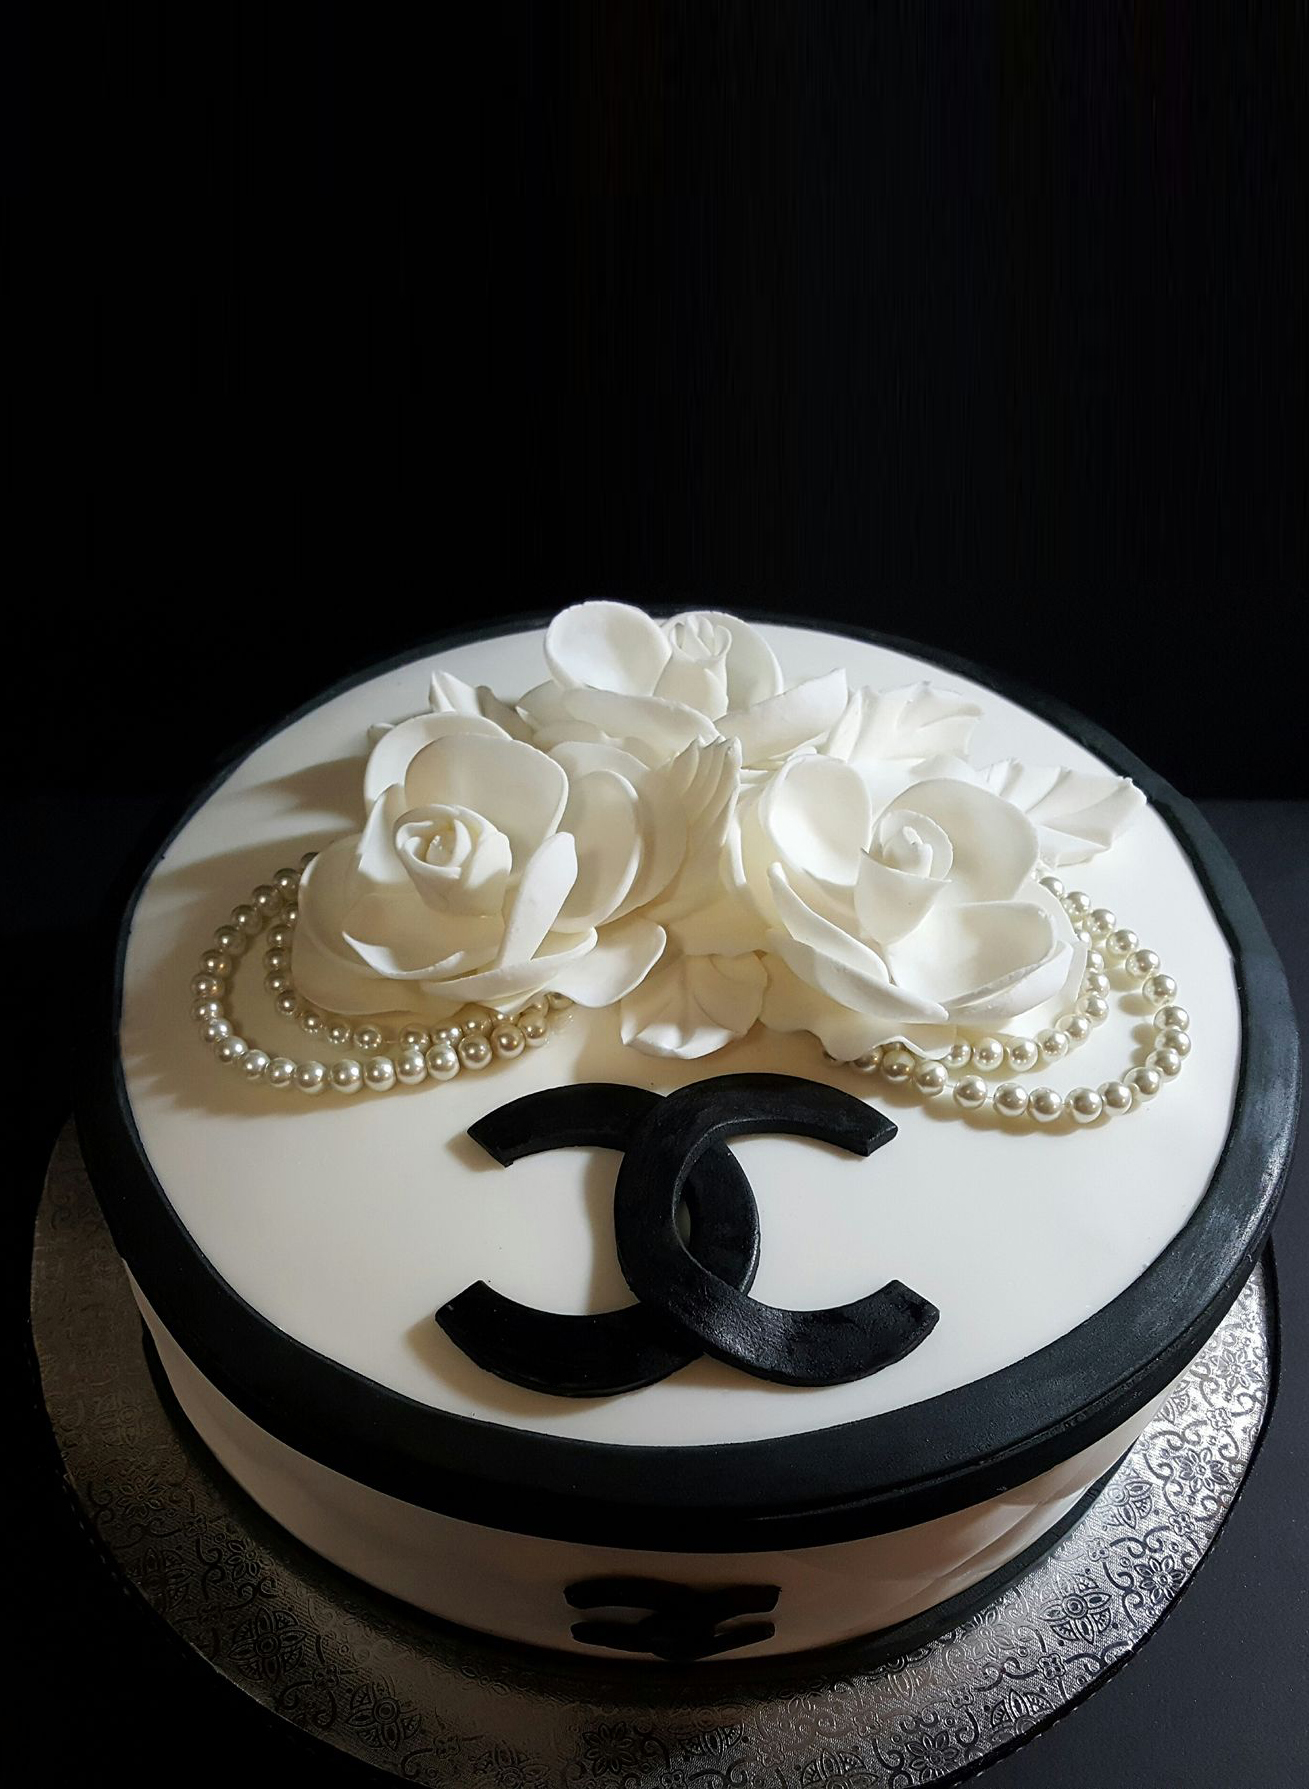 Fios de Mel by Elizabete Costa Cakes and Sweet New York -  1 tier chanel pearls roses cake.jpg